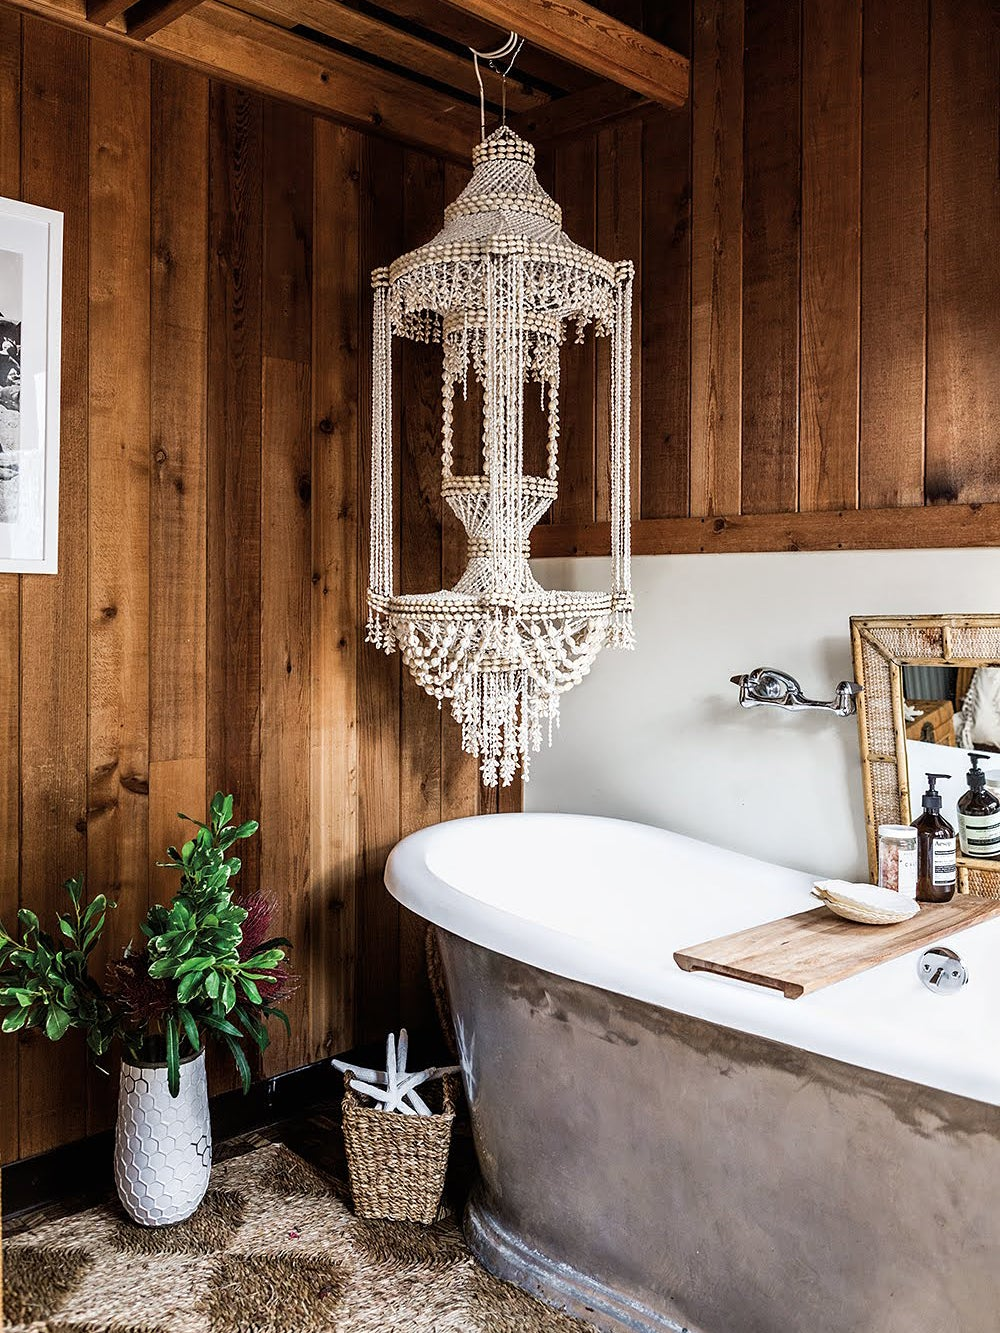 bathtub with elaborate light fixture hanging over it